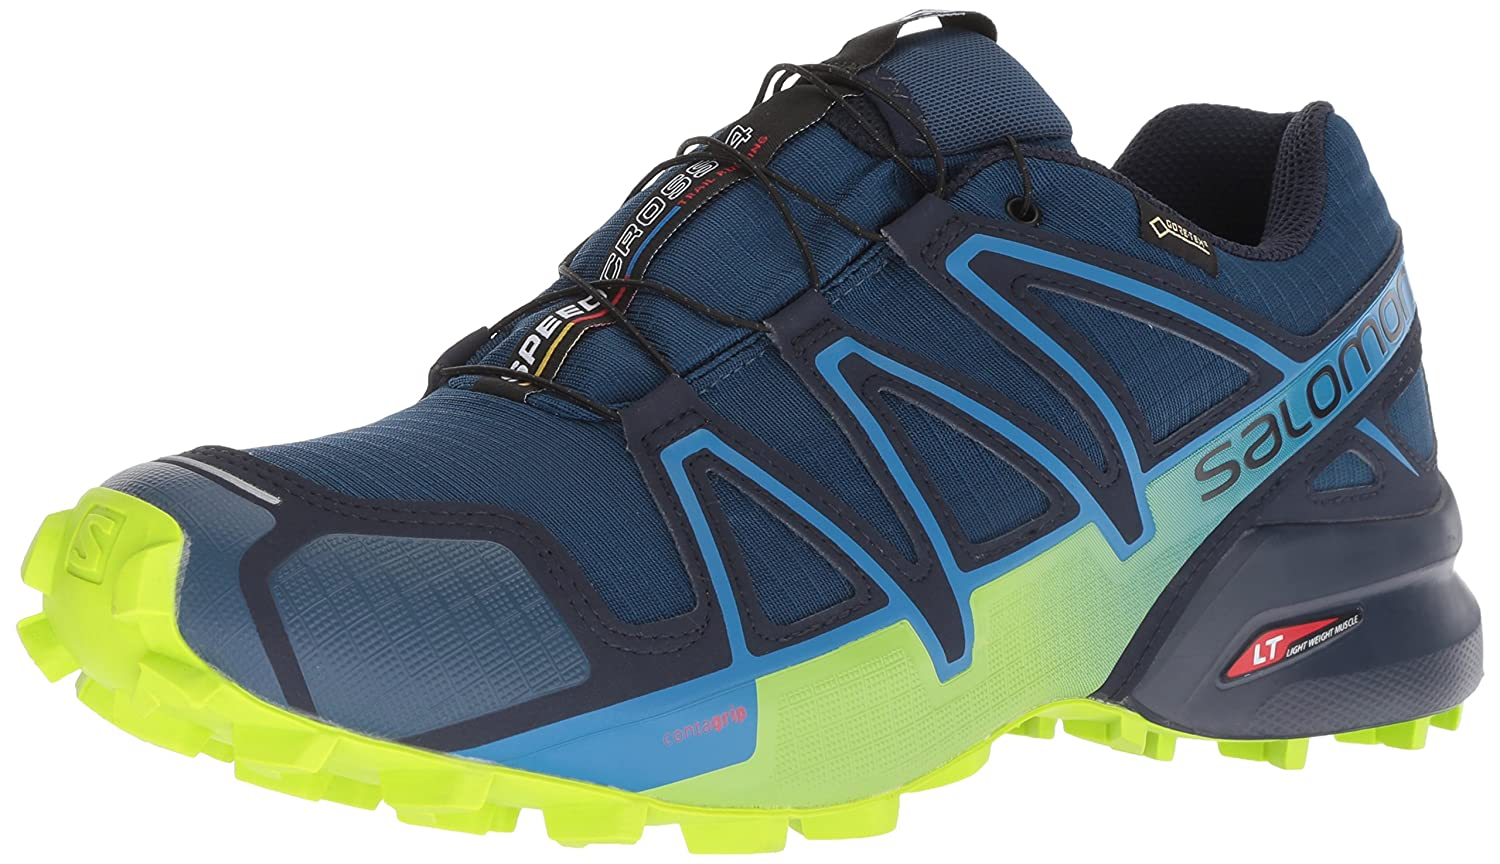 Salomon Speedcross 4, Scarpe da Trail Running Uomo | A Prezzi Convenienti